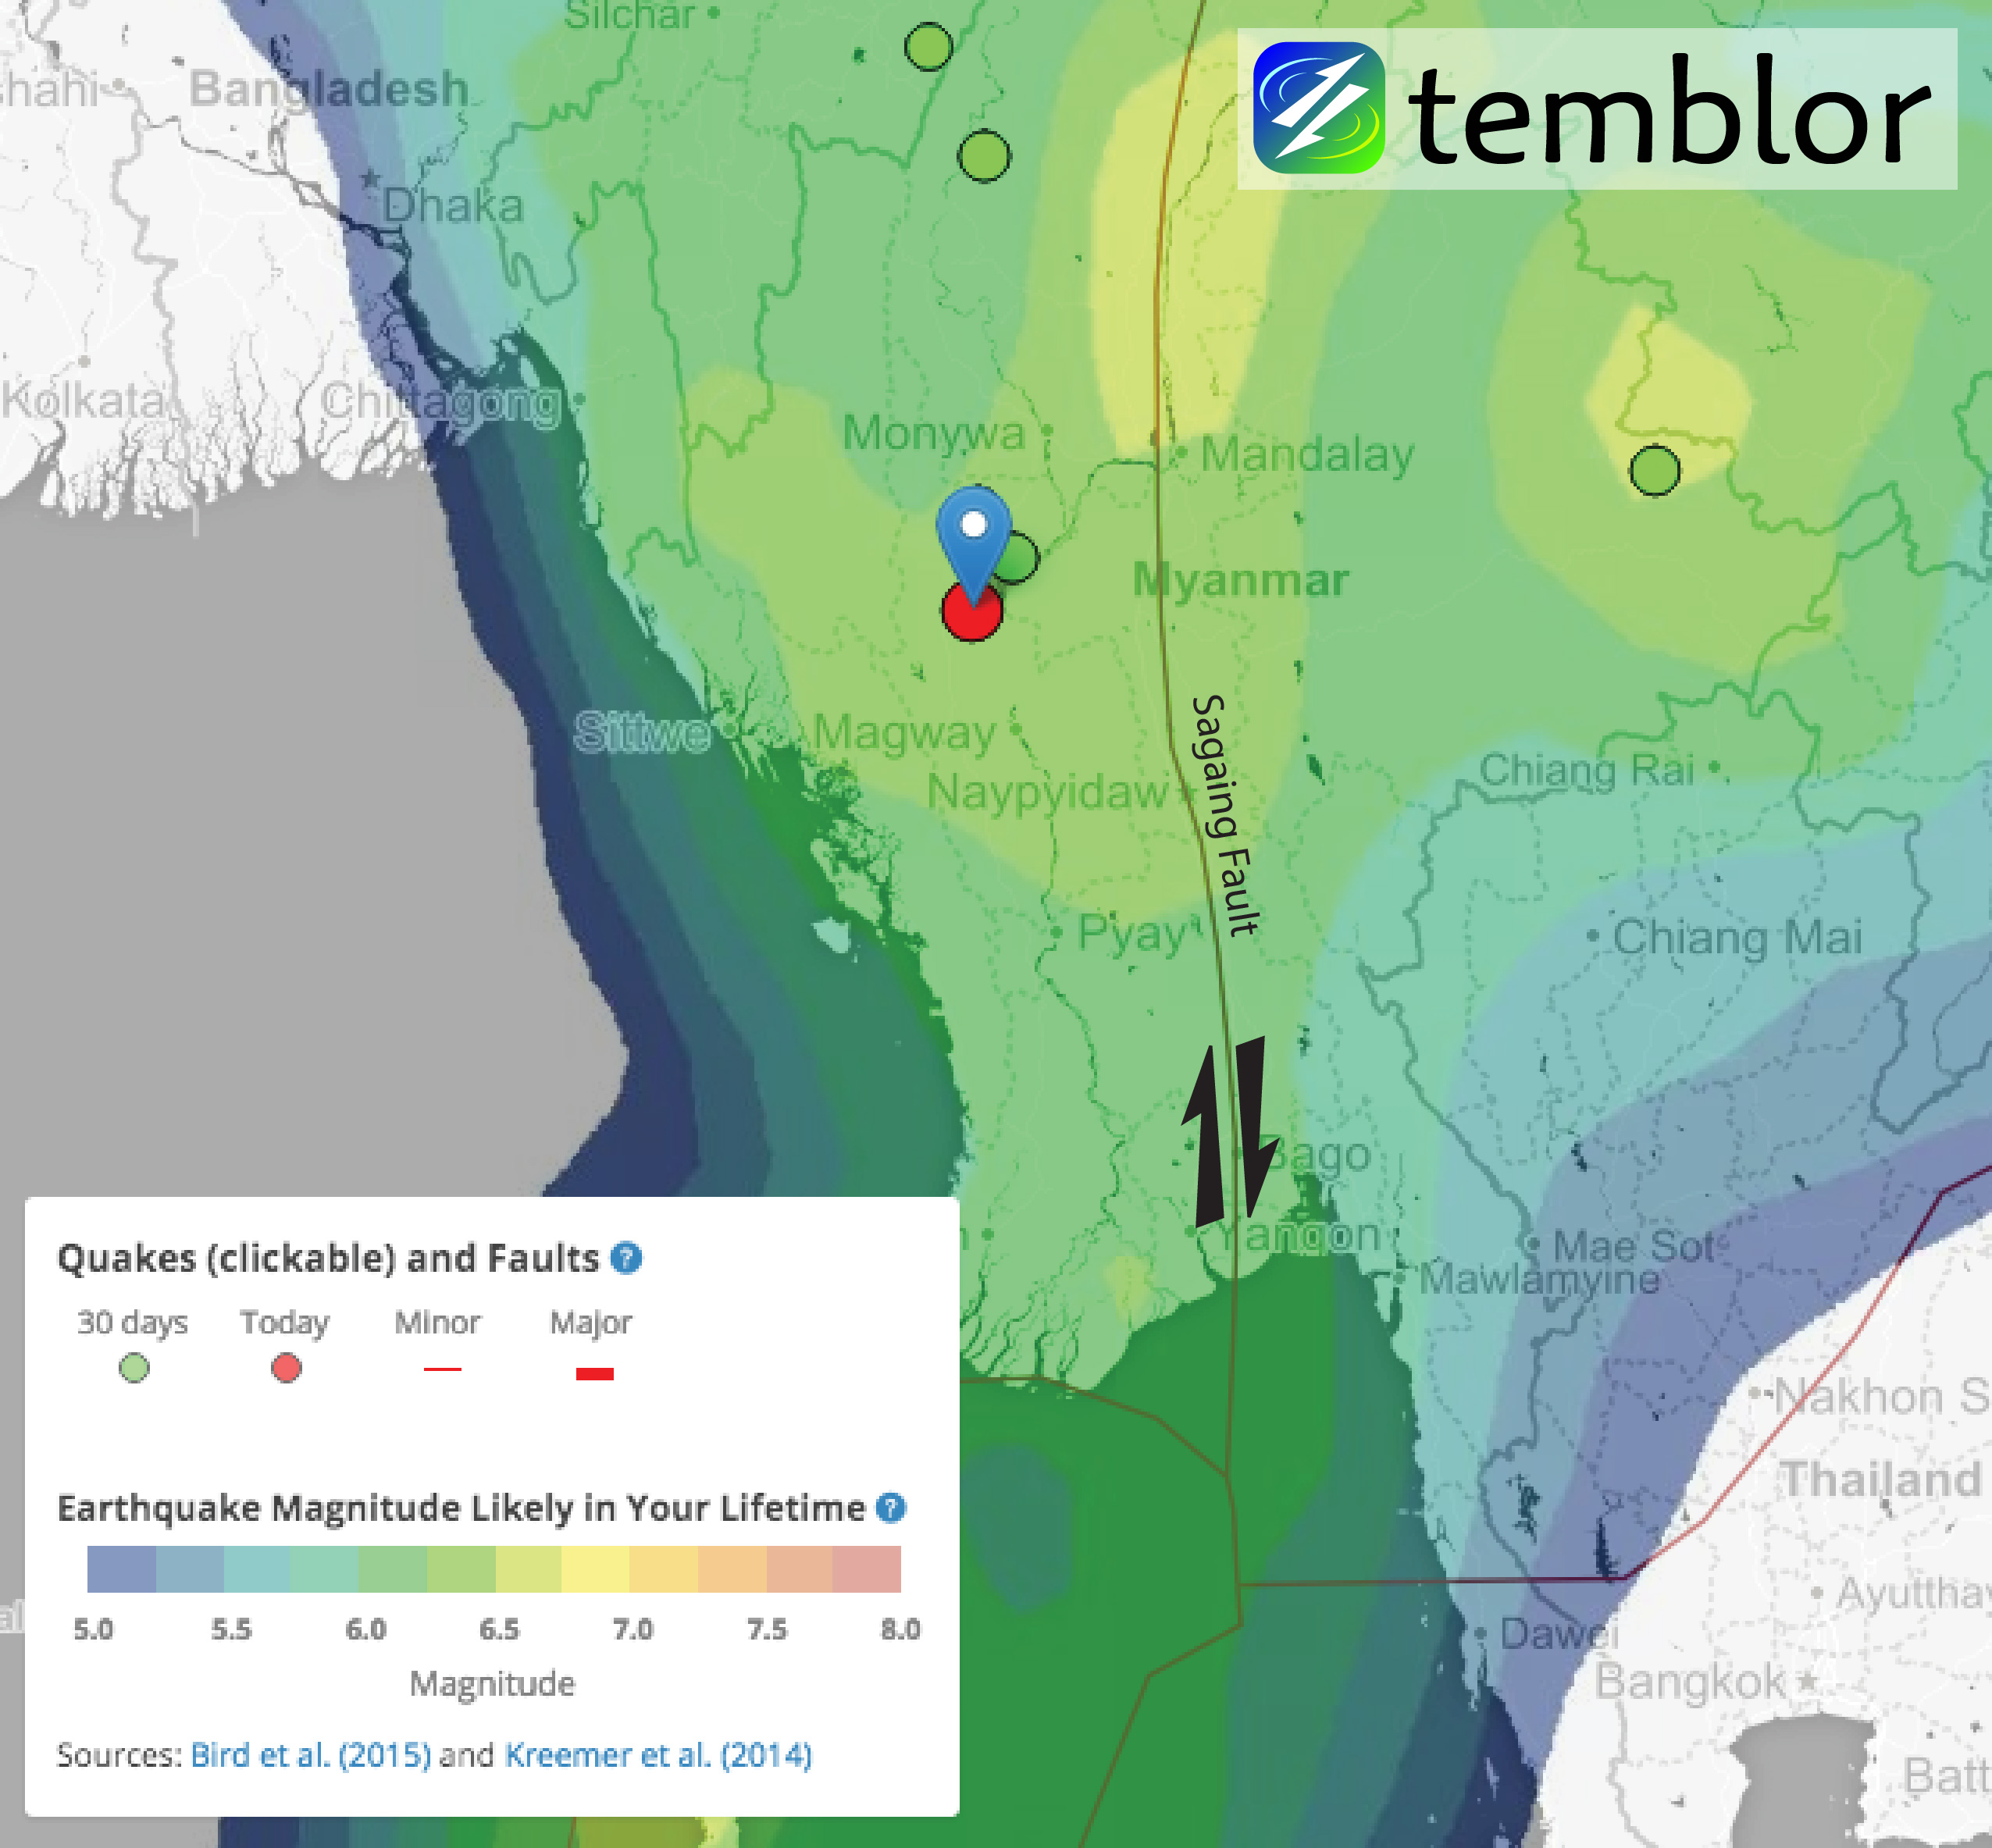 Temblor map of Burma with today's earthquake marked